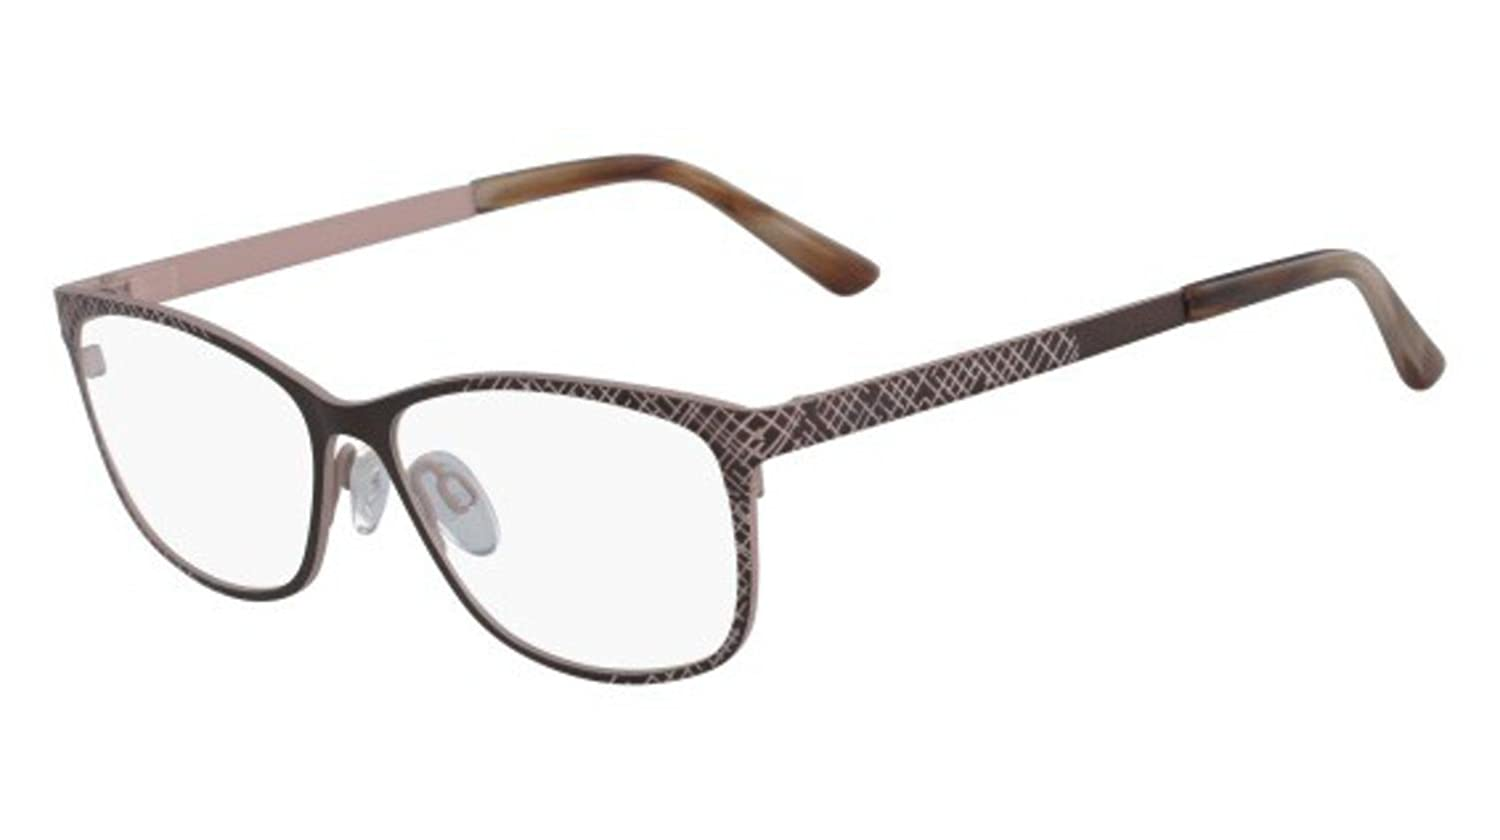 7ce7287626 Eyeglasses SKAGA SK 2765 REBELL 210 BROWN at Amazon Men s Clothing store